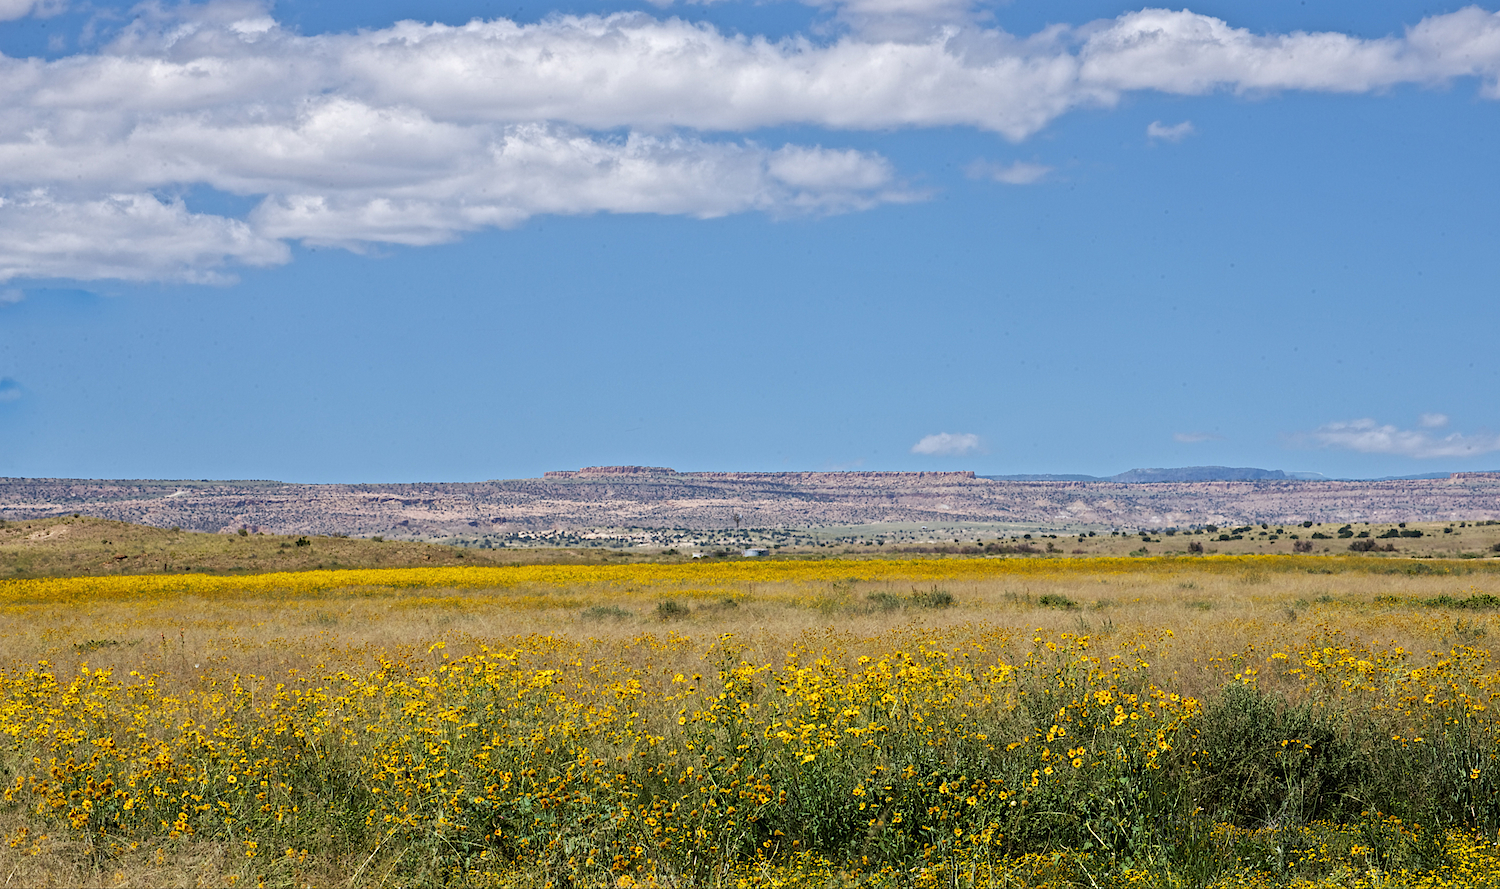 We have never seen so many wildflowers on the mesa.